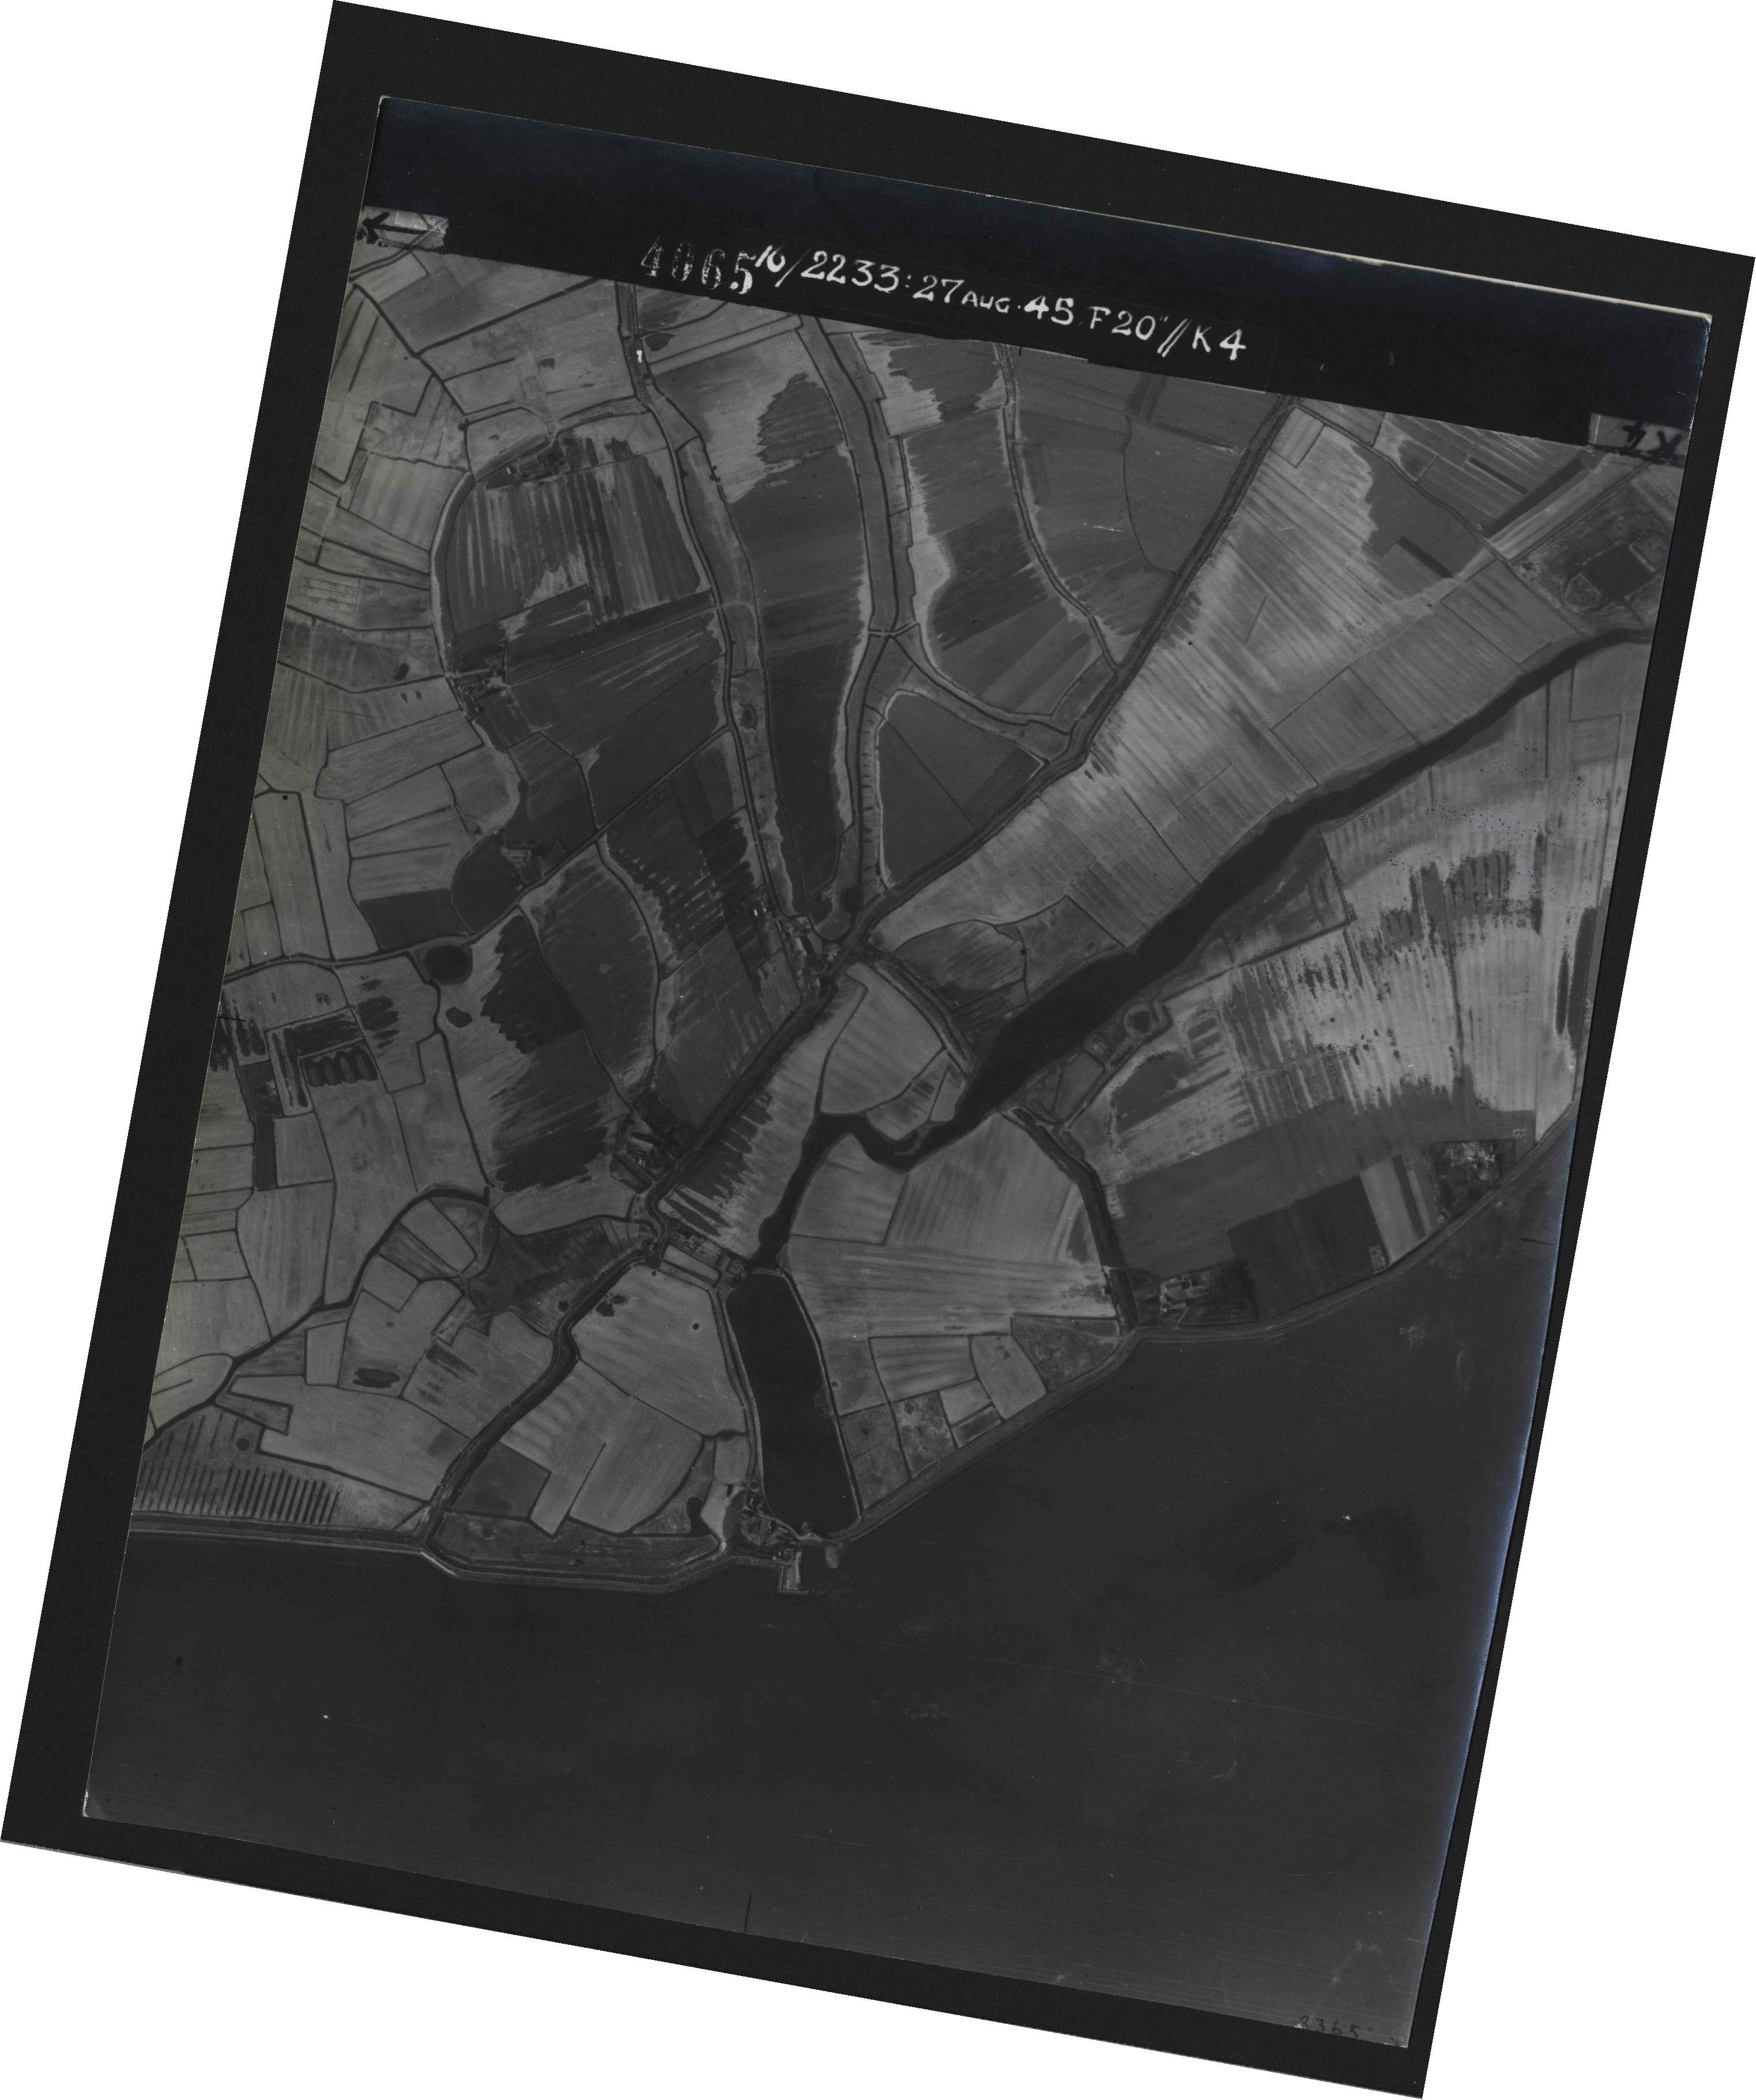 Collection RAF aerial photos 1940-1945 - flight 034, run 07, photo 4065